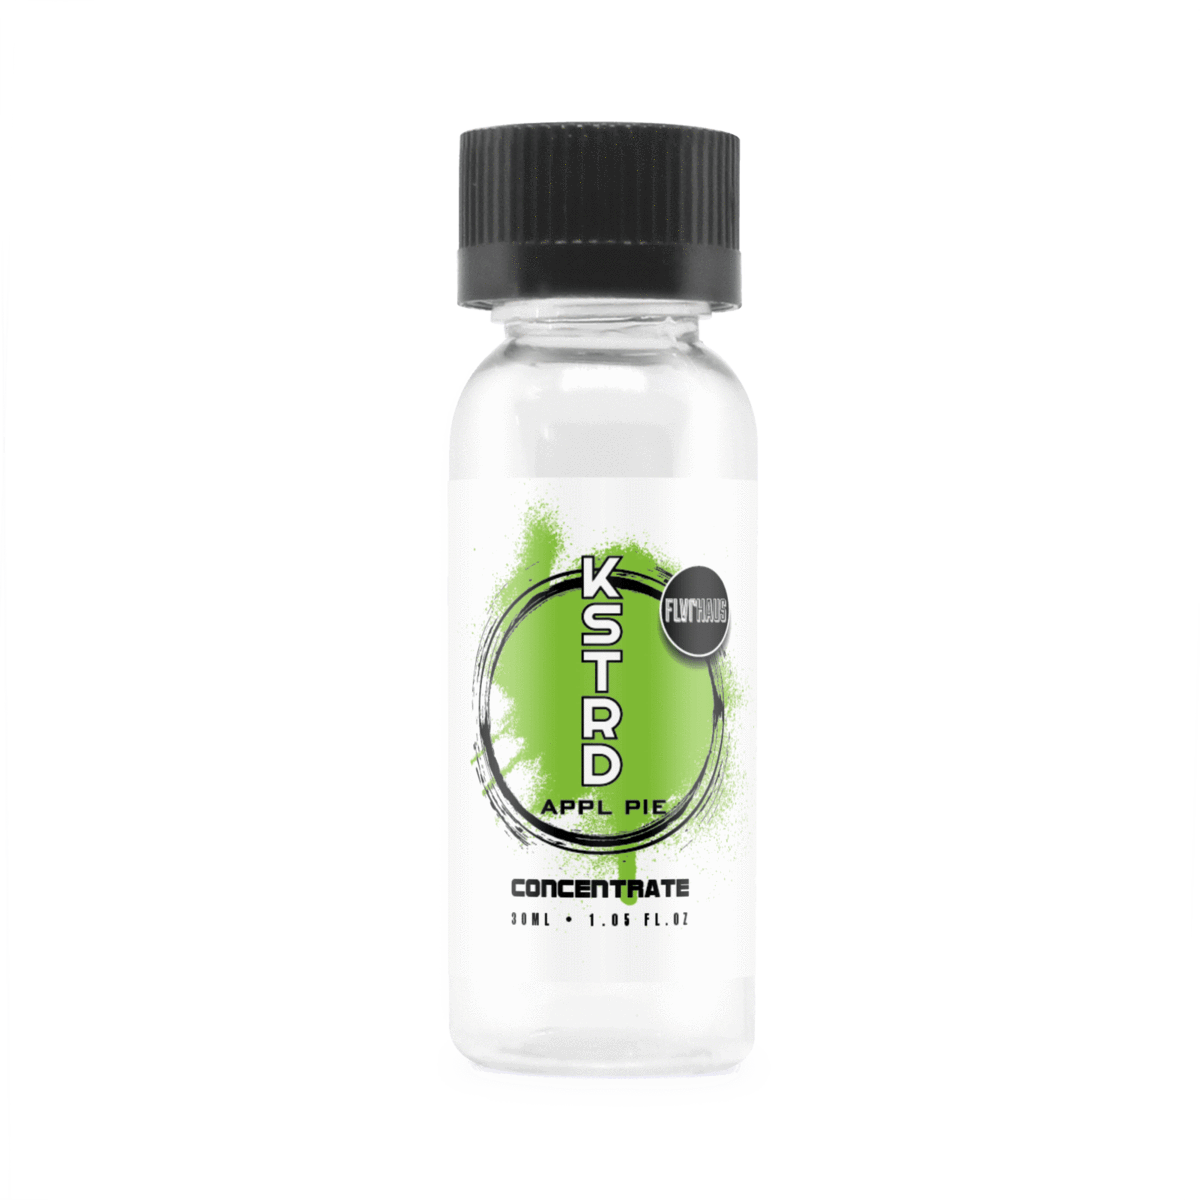 Appl Pie Flavour Concentrate by KSTRD